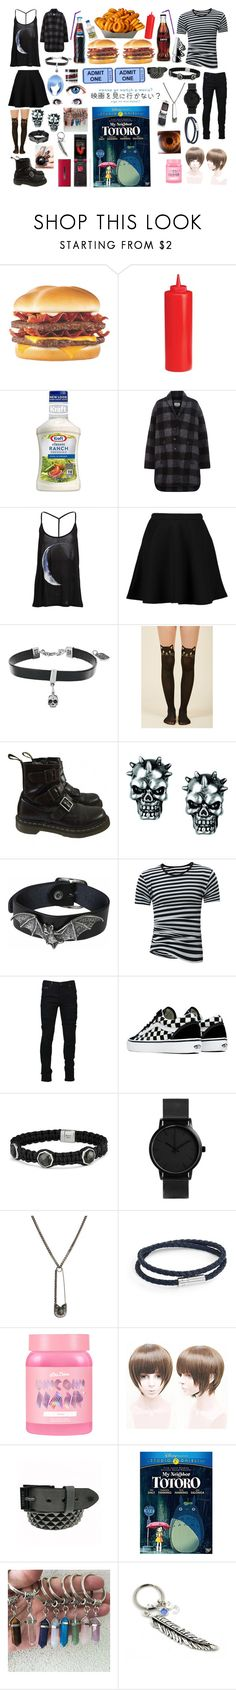 """Untitled #410"" by xxsnowfoxx ❤ liked on Polyvore featuring Junk Food Clothing, Étoile Isabel Marant, Boohoo, King Baby Studio, Dr. Martens, Marcelo Burlon, Vans, David Yurman, Alexander McQueen and Tateossian"